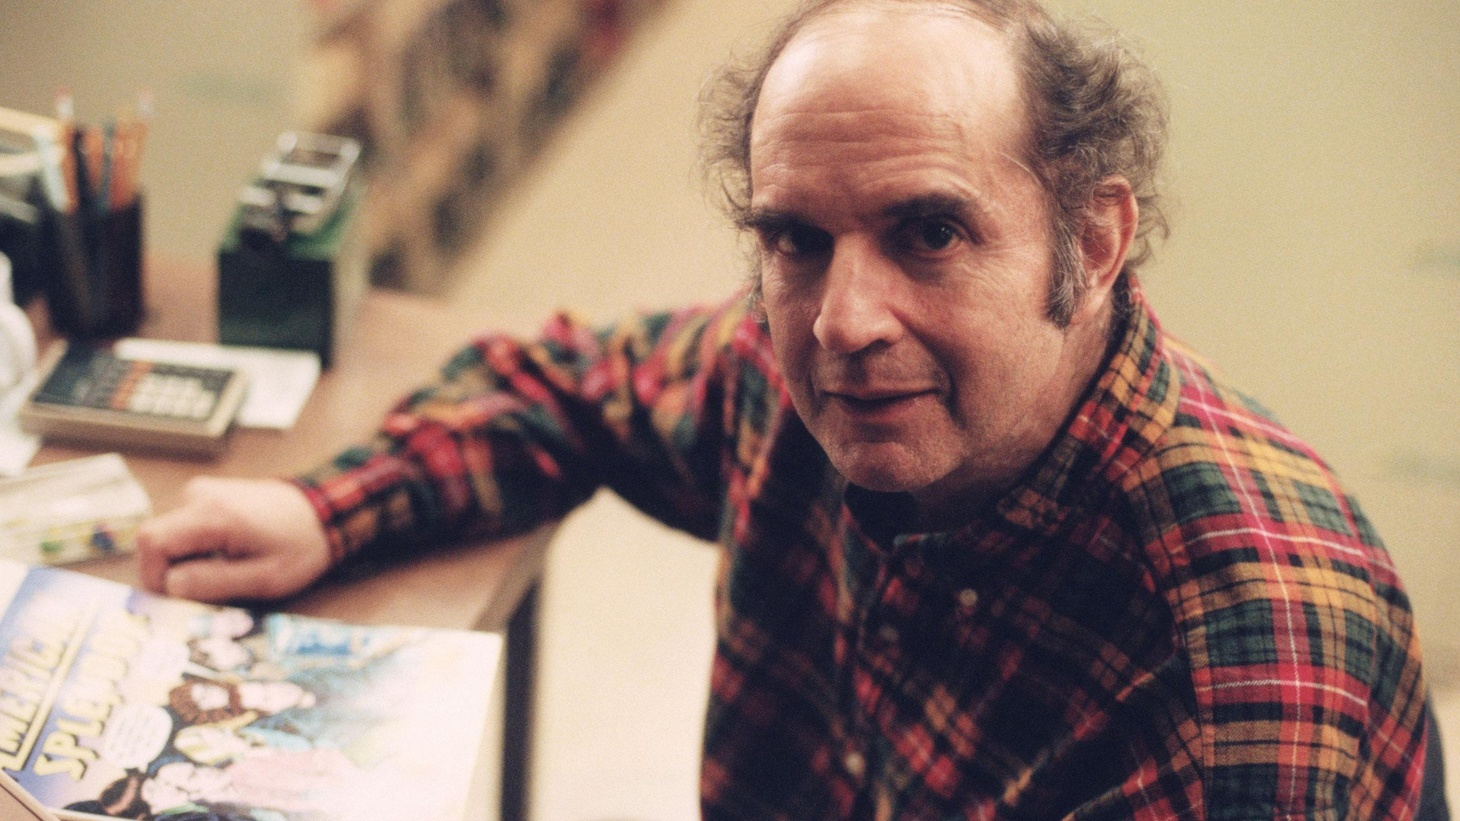 On December 6, 1991, KCRW broadcast an original radio production of Harvey Pekar's American Splendor. To honor Pekar's memory, KCRW will reprise the radio production on Friday, July 16 from 7:30-8 pm, on air and KCRW.com Live stream only. (It will not be available on  demand or via  podcast.)